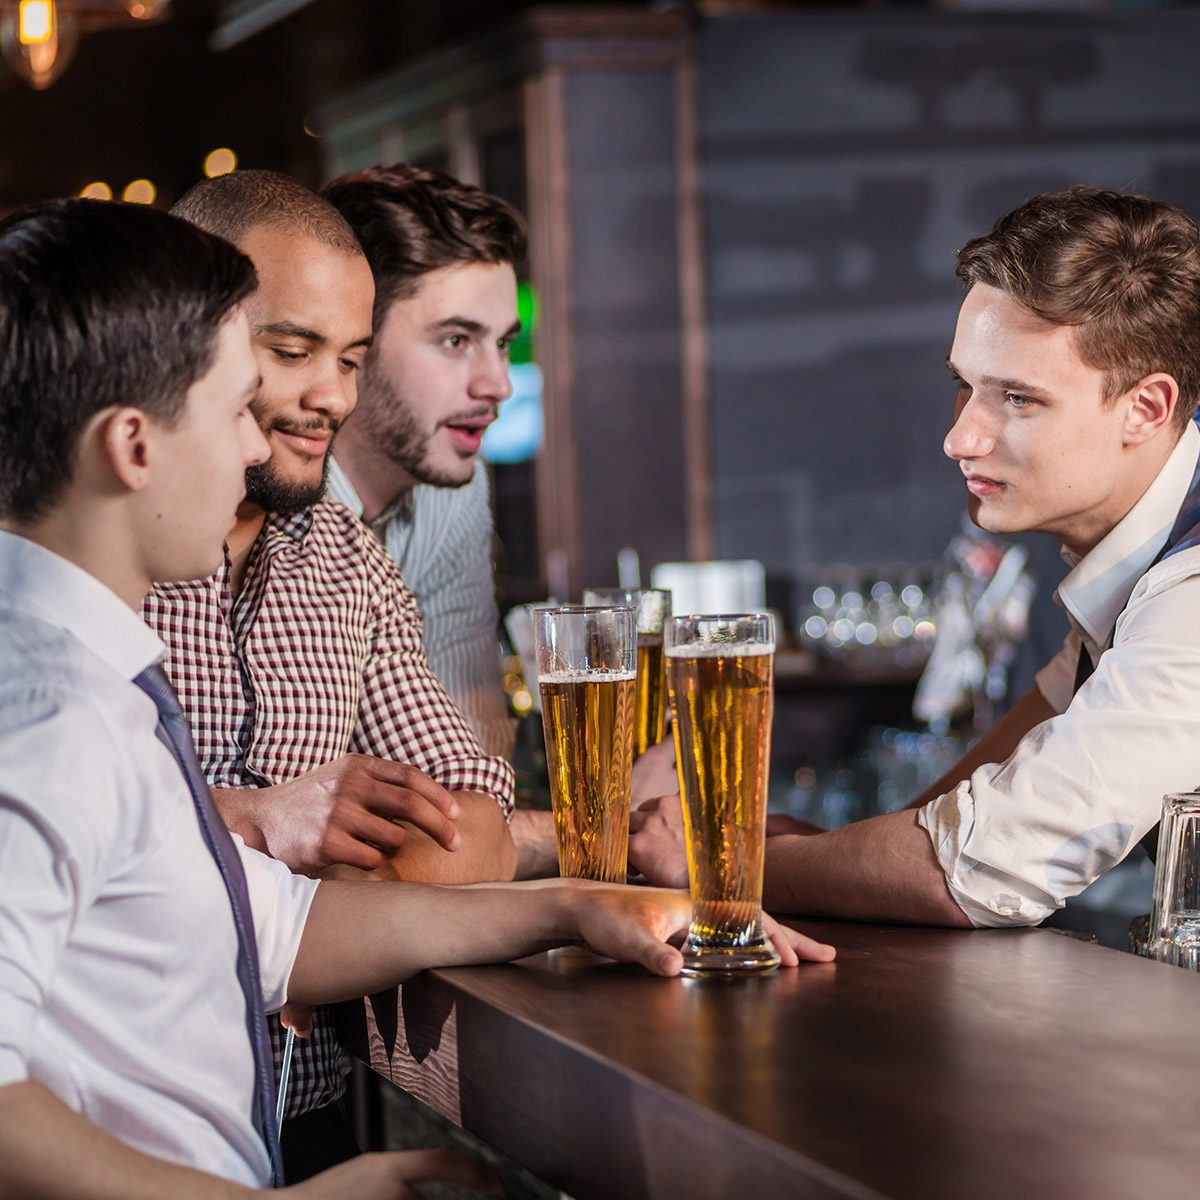 Acceptance of the order at the bar. Three cheerful friend makes ordering a beer from the bartender